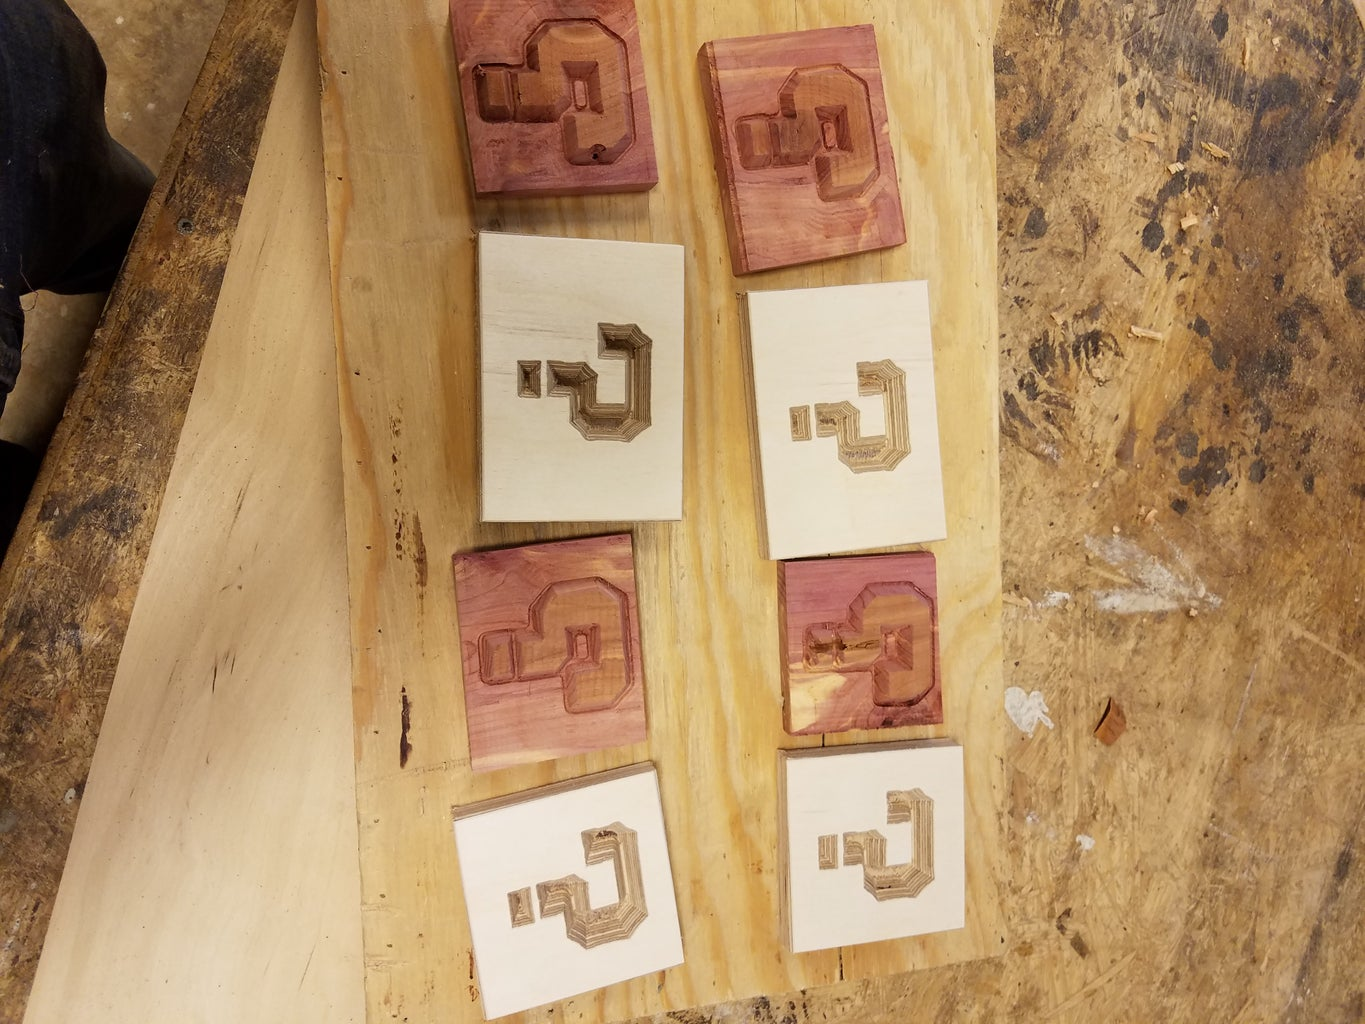 Glue Up and Separating the Pieces